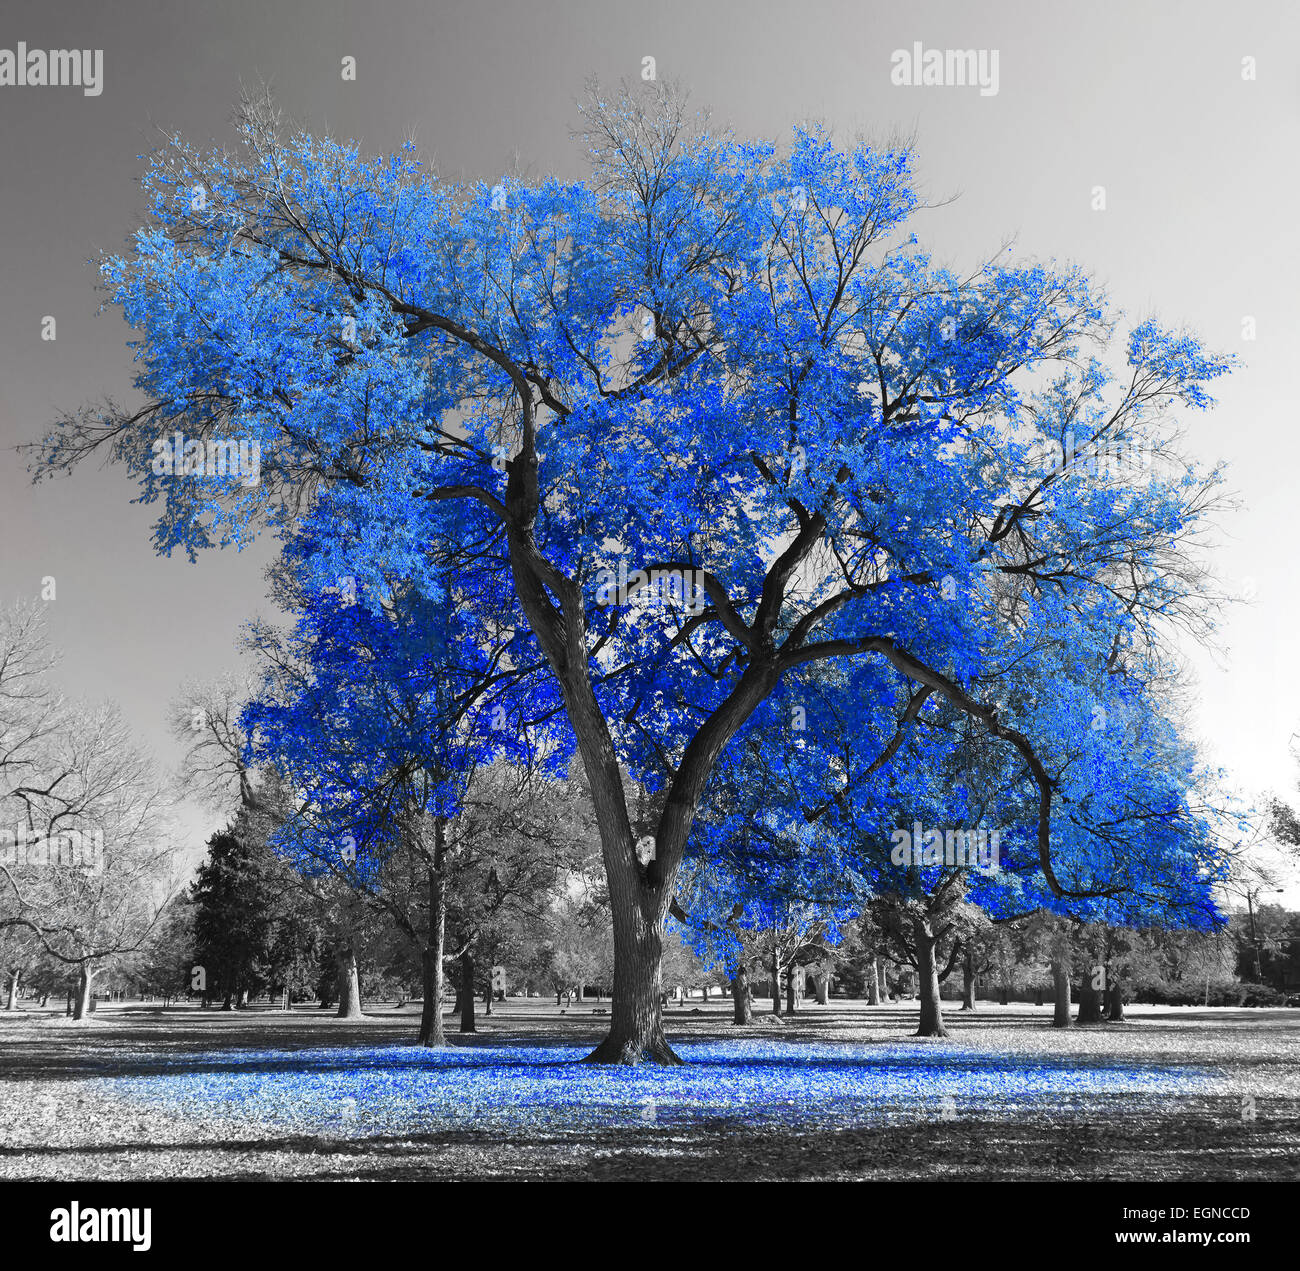 Big blue tree in a black and white landscape - Stock Image